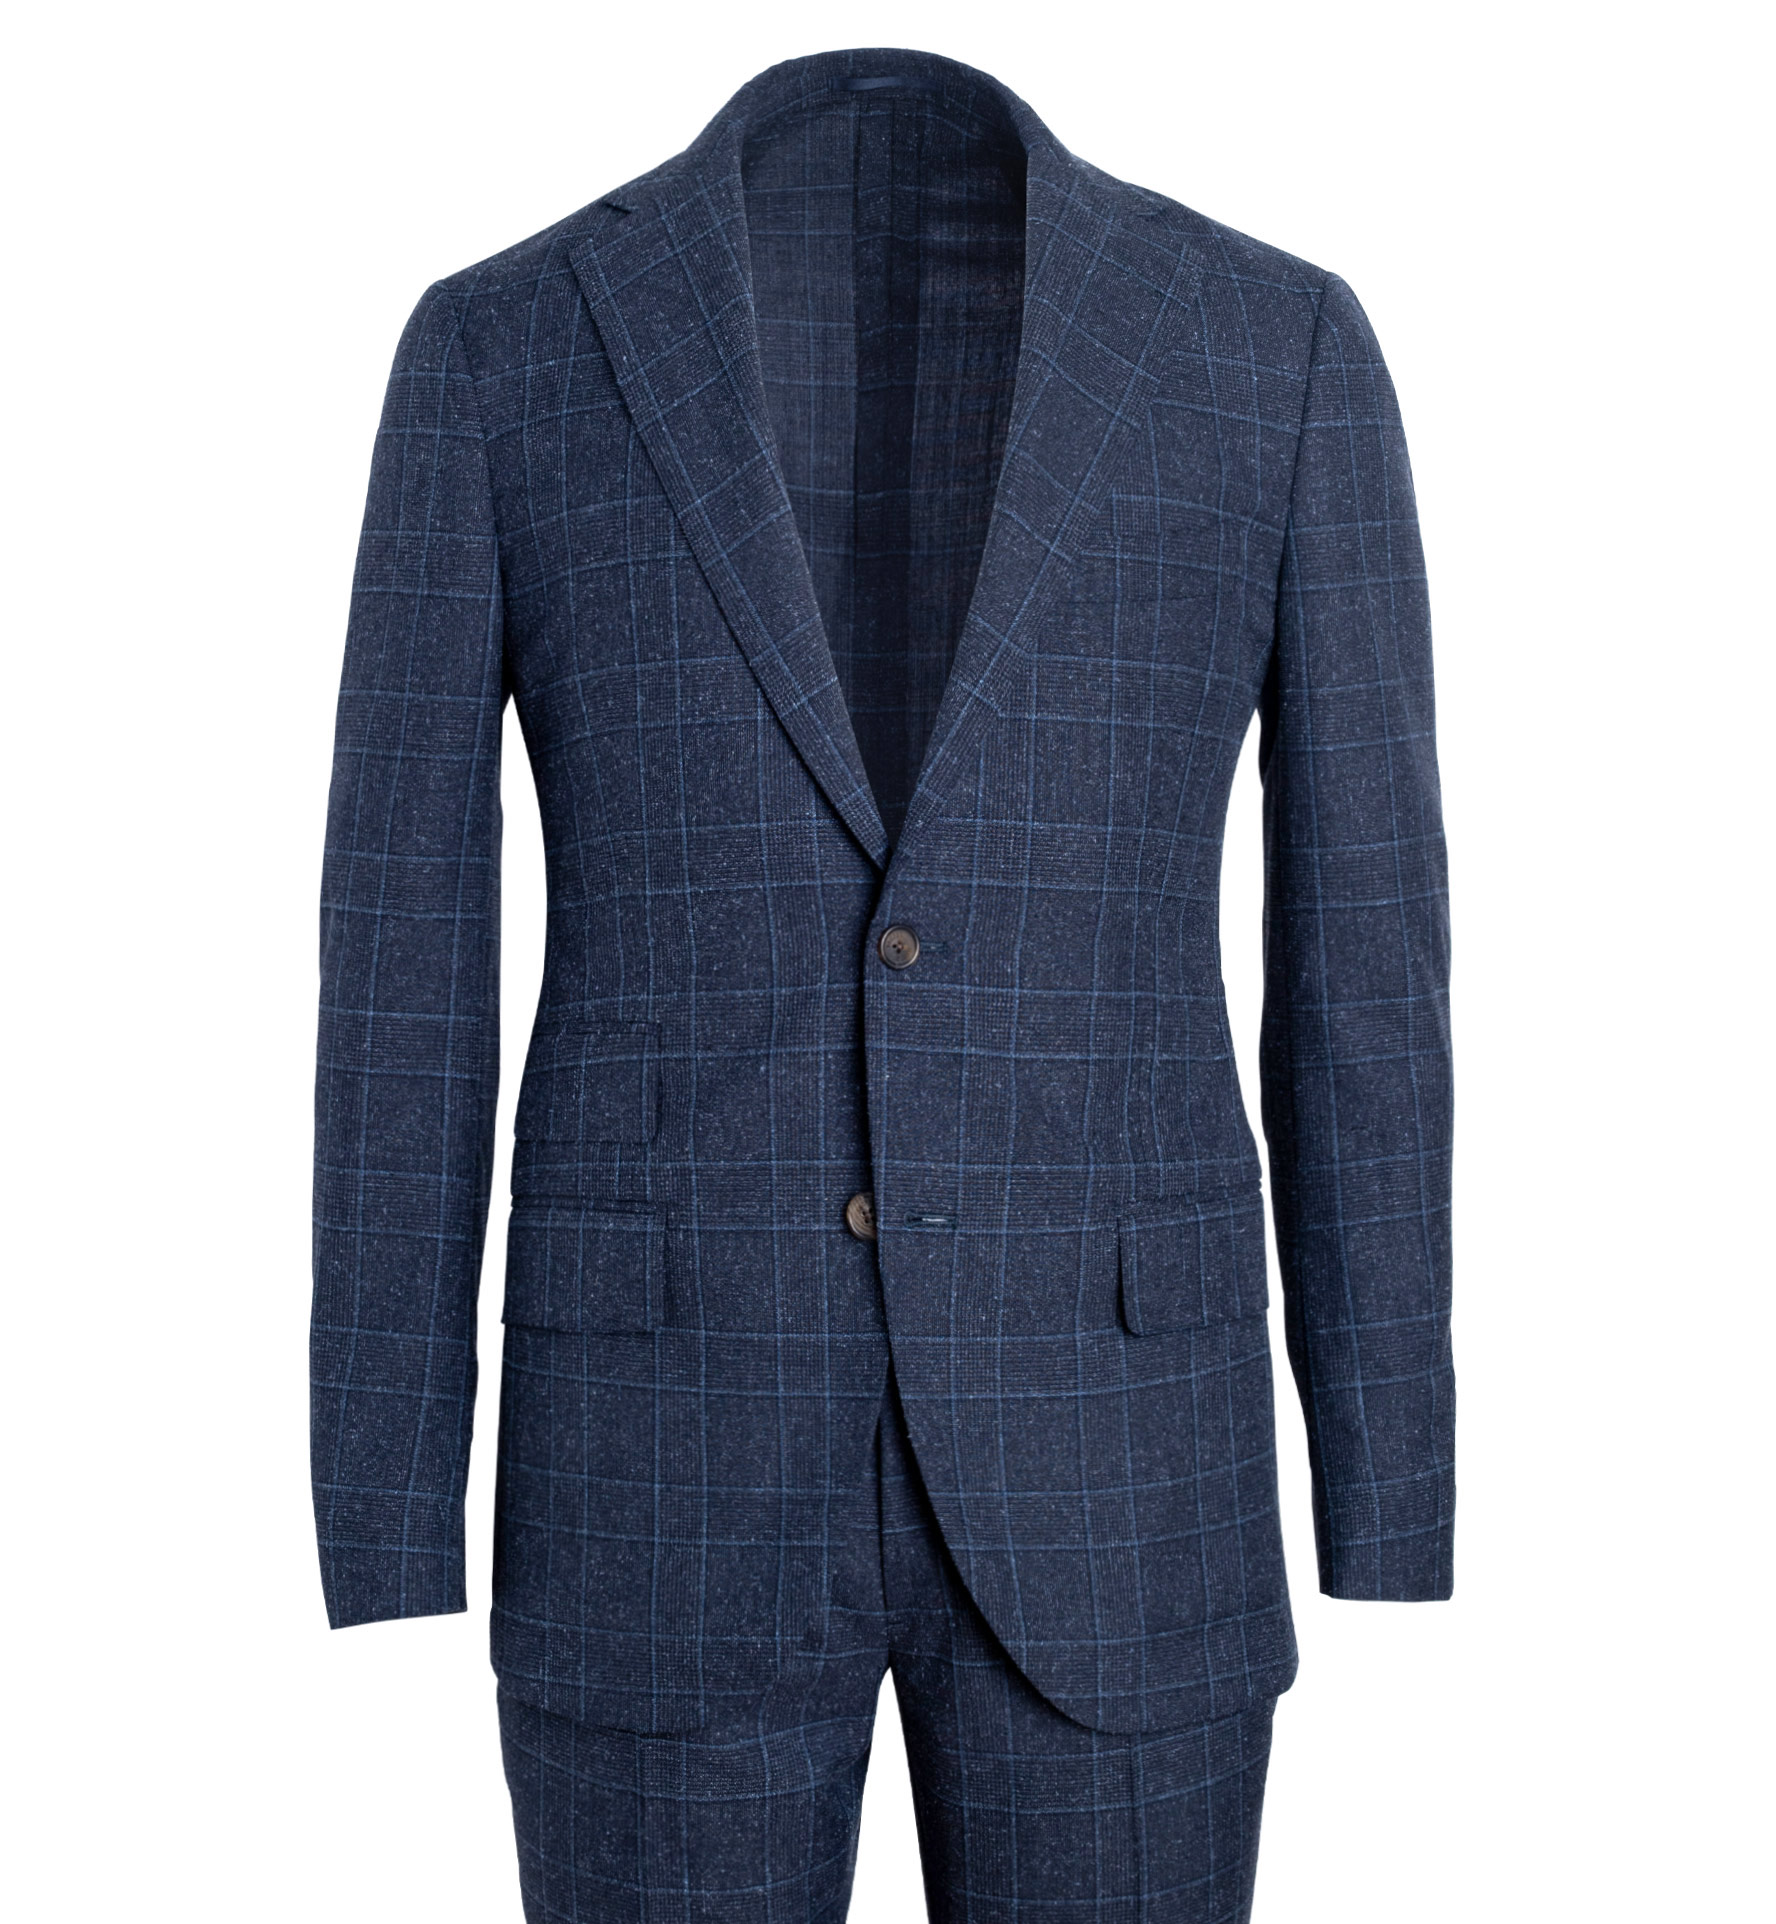 Zoom Image of Bedford Navy Glen Plaid Wool and Silk Suit